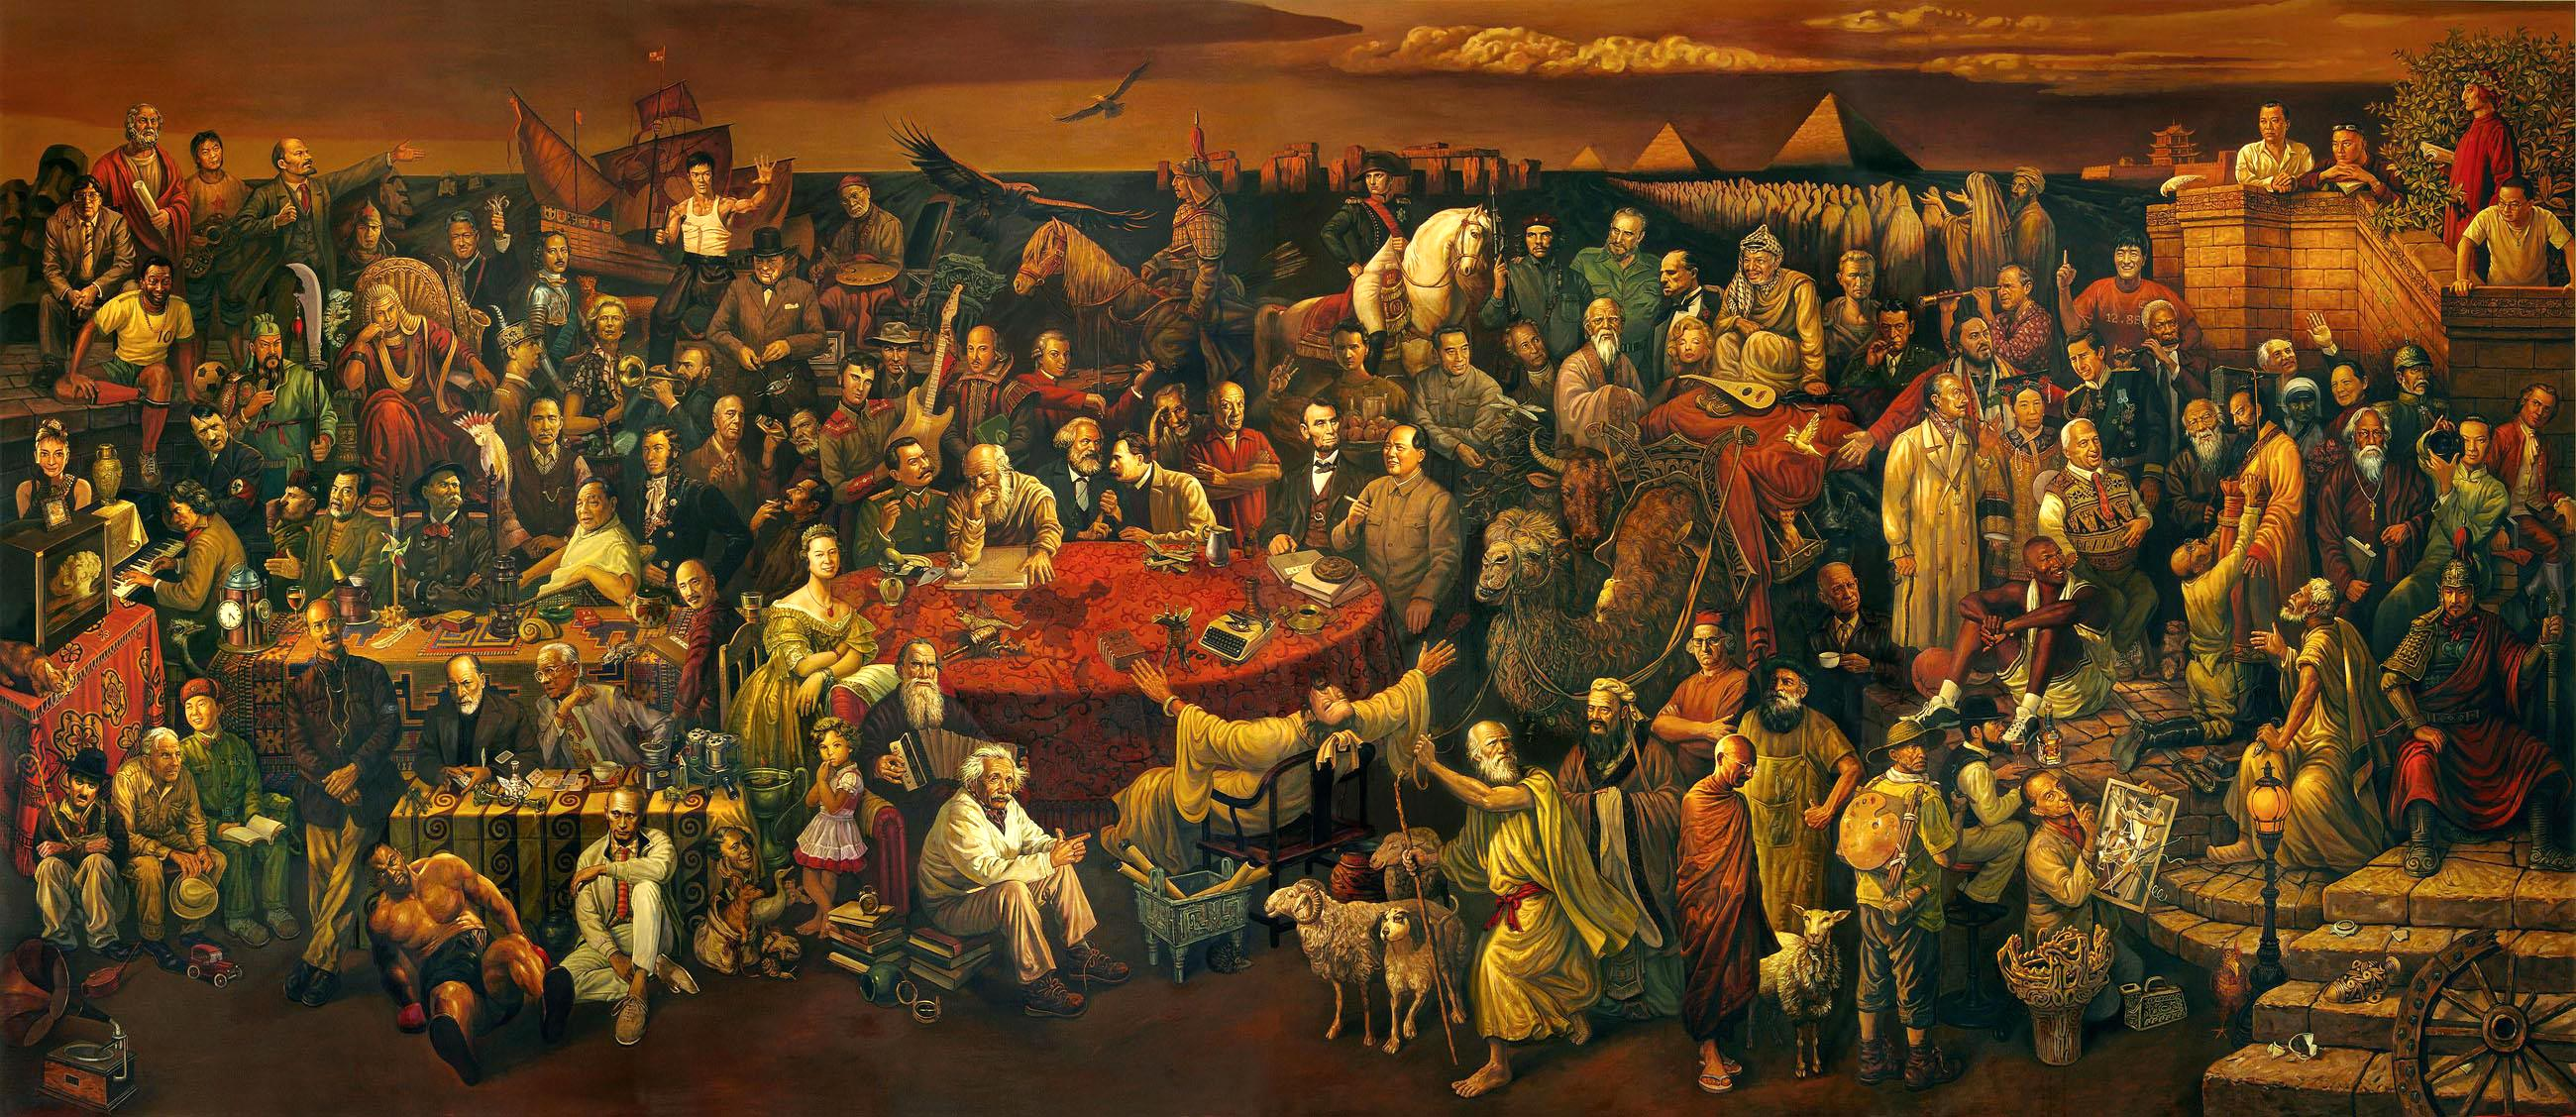 how the realists changed the face of europe in the nineteenth century Naturalism in art refers to the depiction of realistic objects in a natural setting the realist movement of the 19th century advocated naturalism in reaction to the stylized and idealized depictions of subjects in romanticism, but many painters have used a similar approach over the centuriesone example of naturalism is the artwork of.